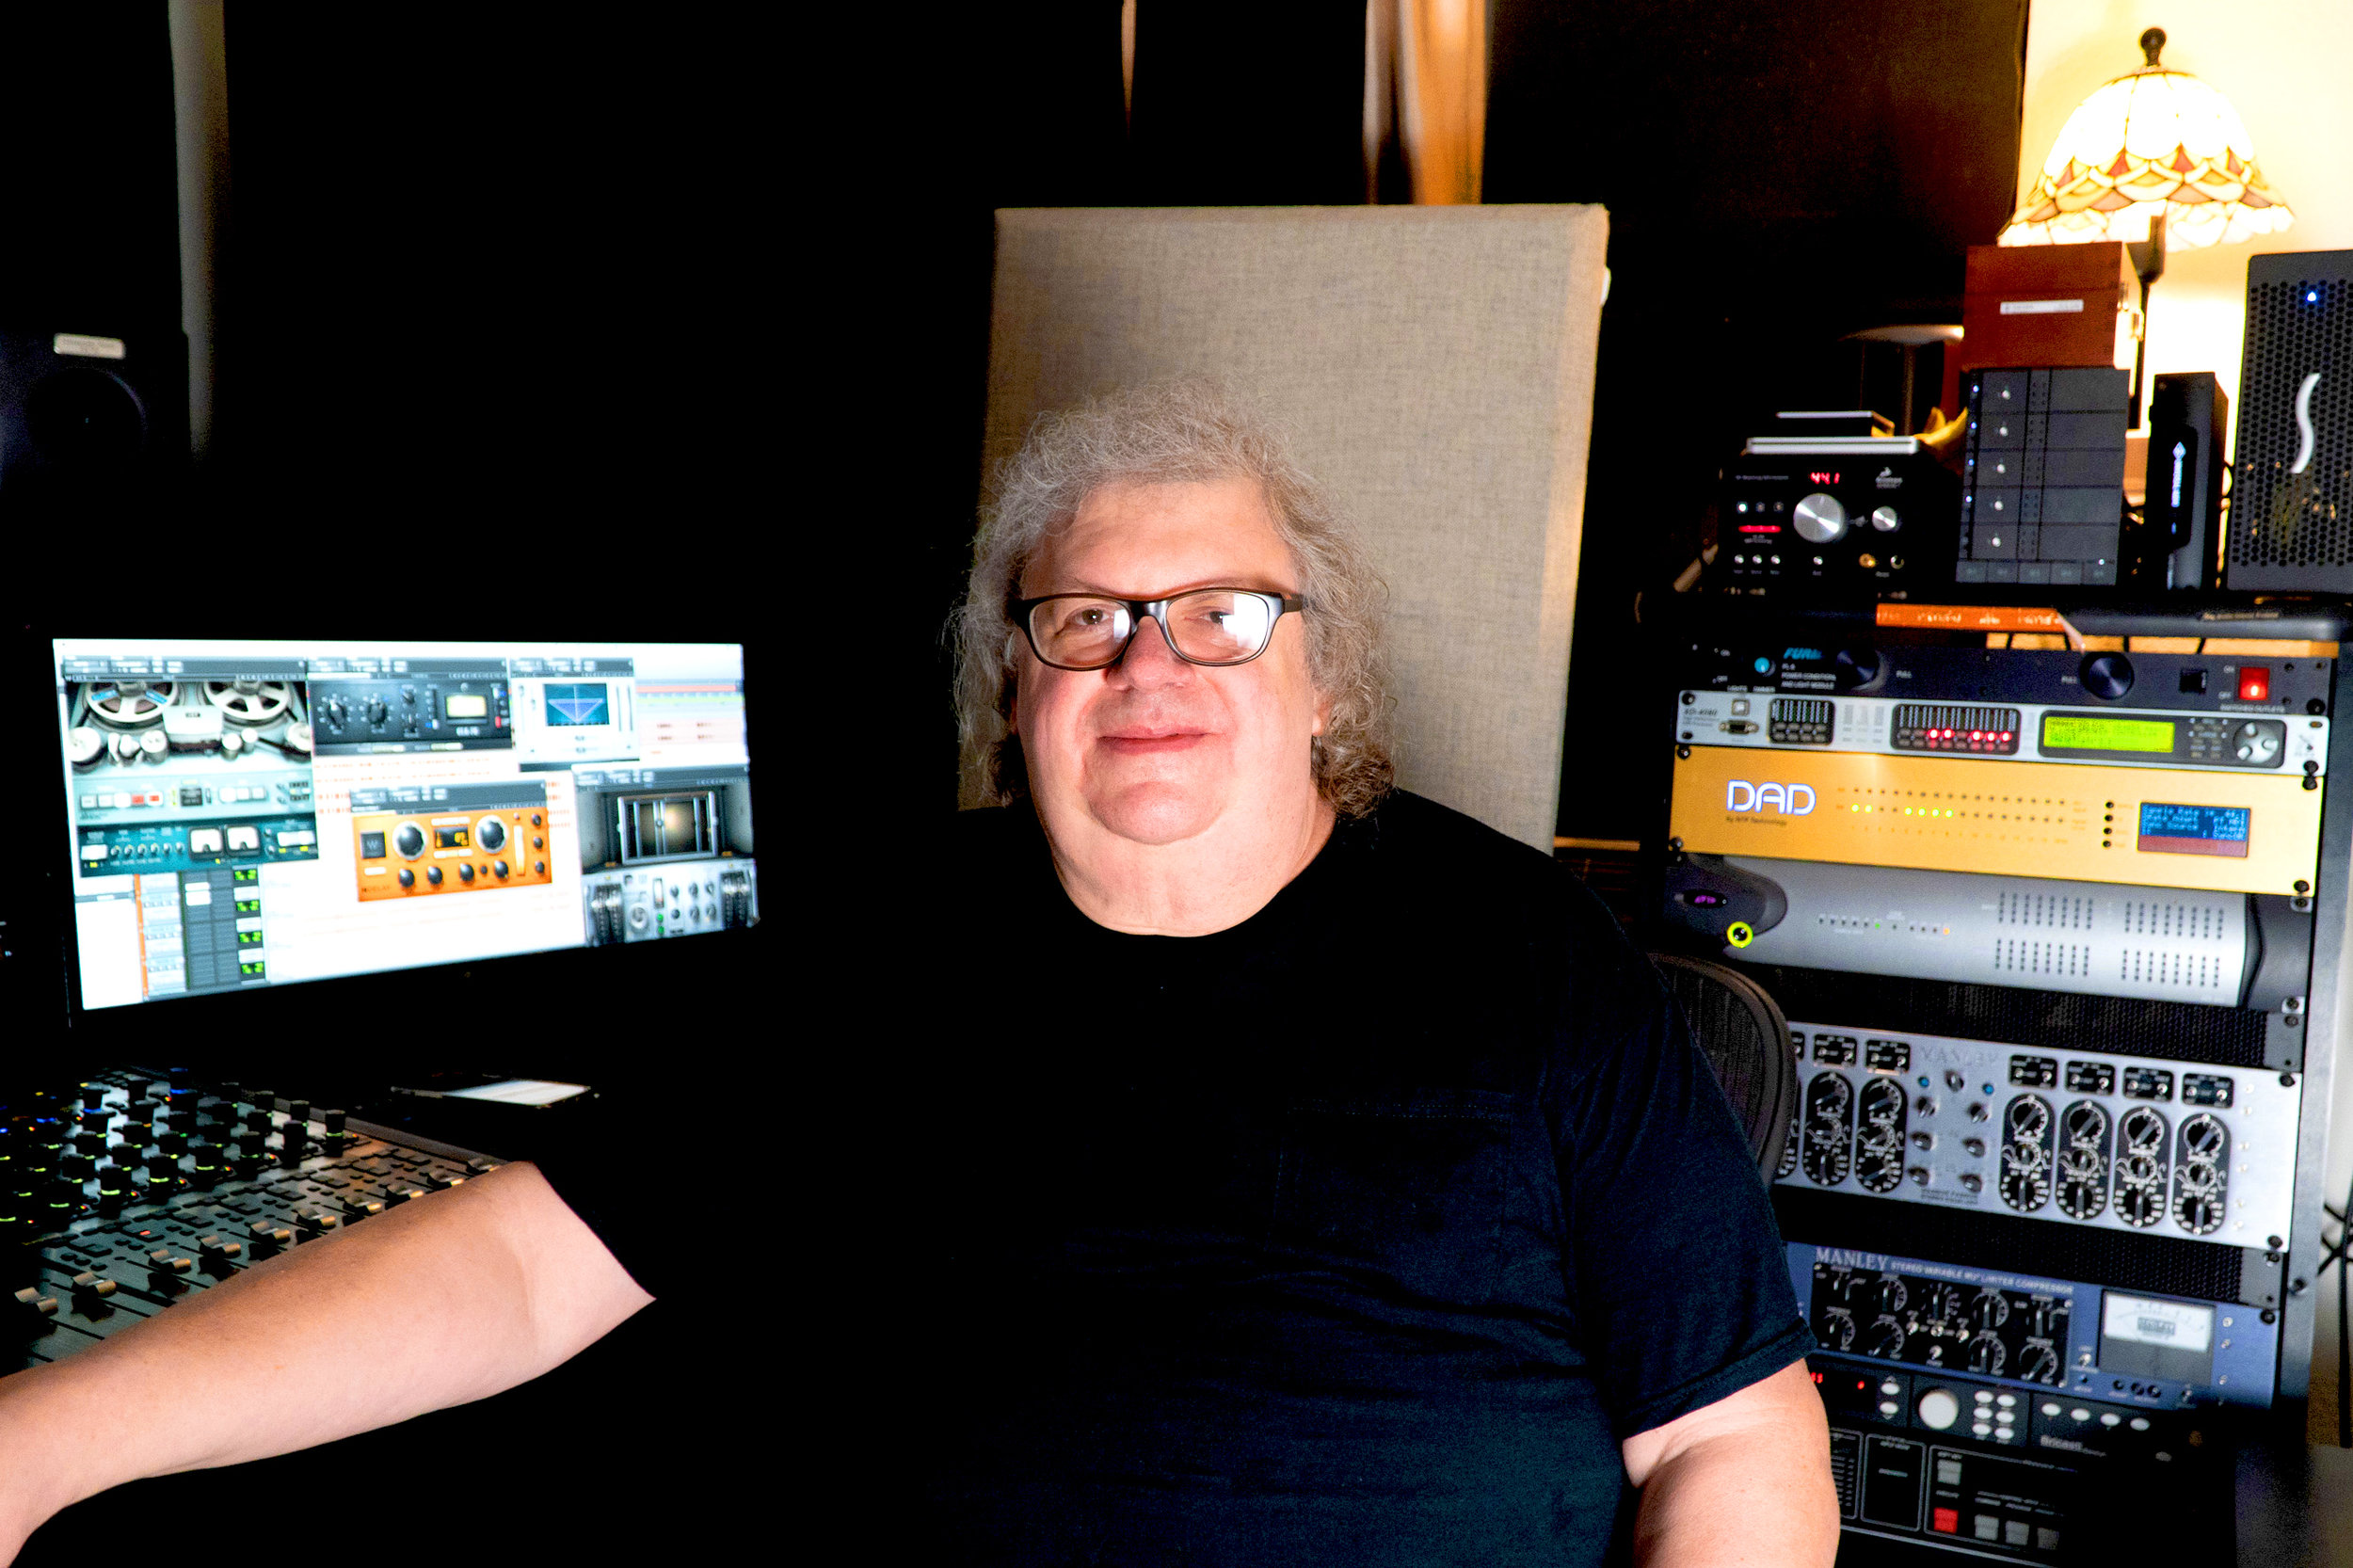 - Mick Guzauski is one of the most celebrated producer/engineers in music history.With 15 Grammy Awards, 12 Grammy nominations, 28 number one hits and countless other accolades, Mick is recognized as a leading authority in audio engineering.Mick has shaped the sound of recorded music across all genres for nearly fifty years, working with many of the most successful artists in music.